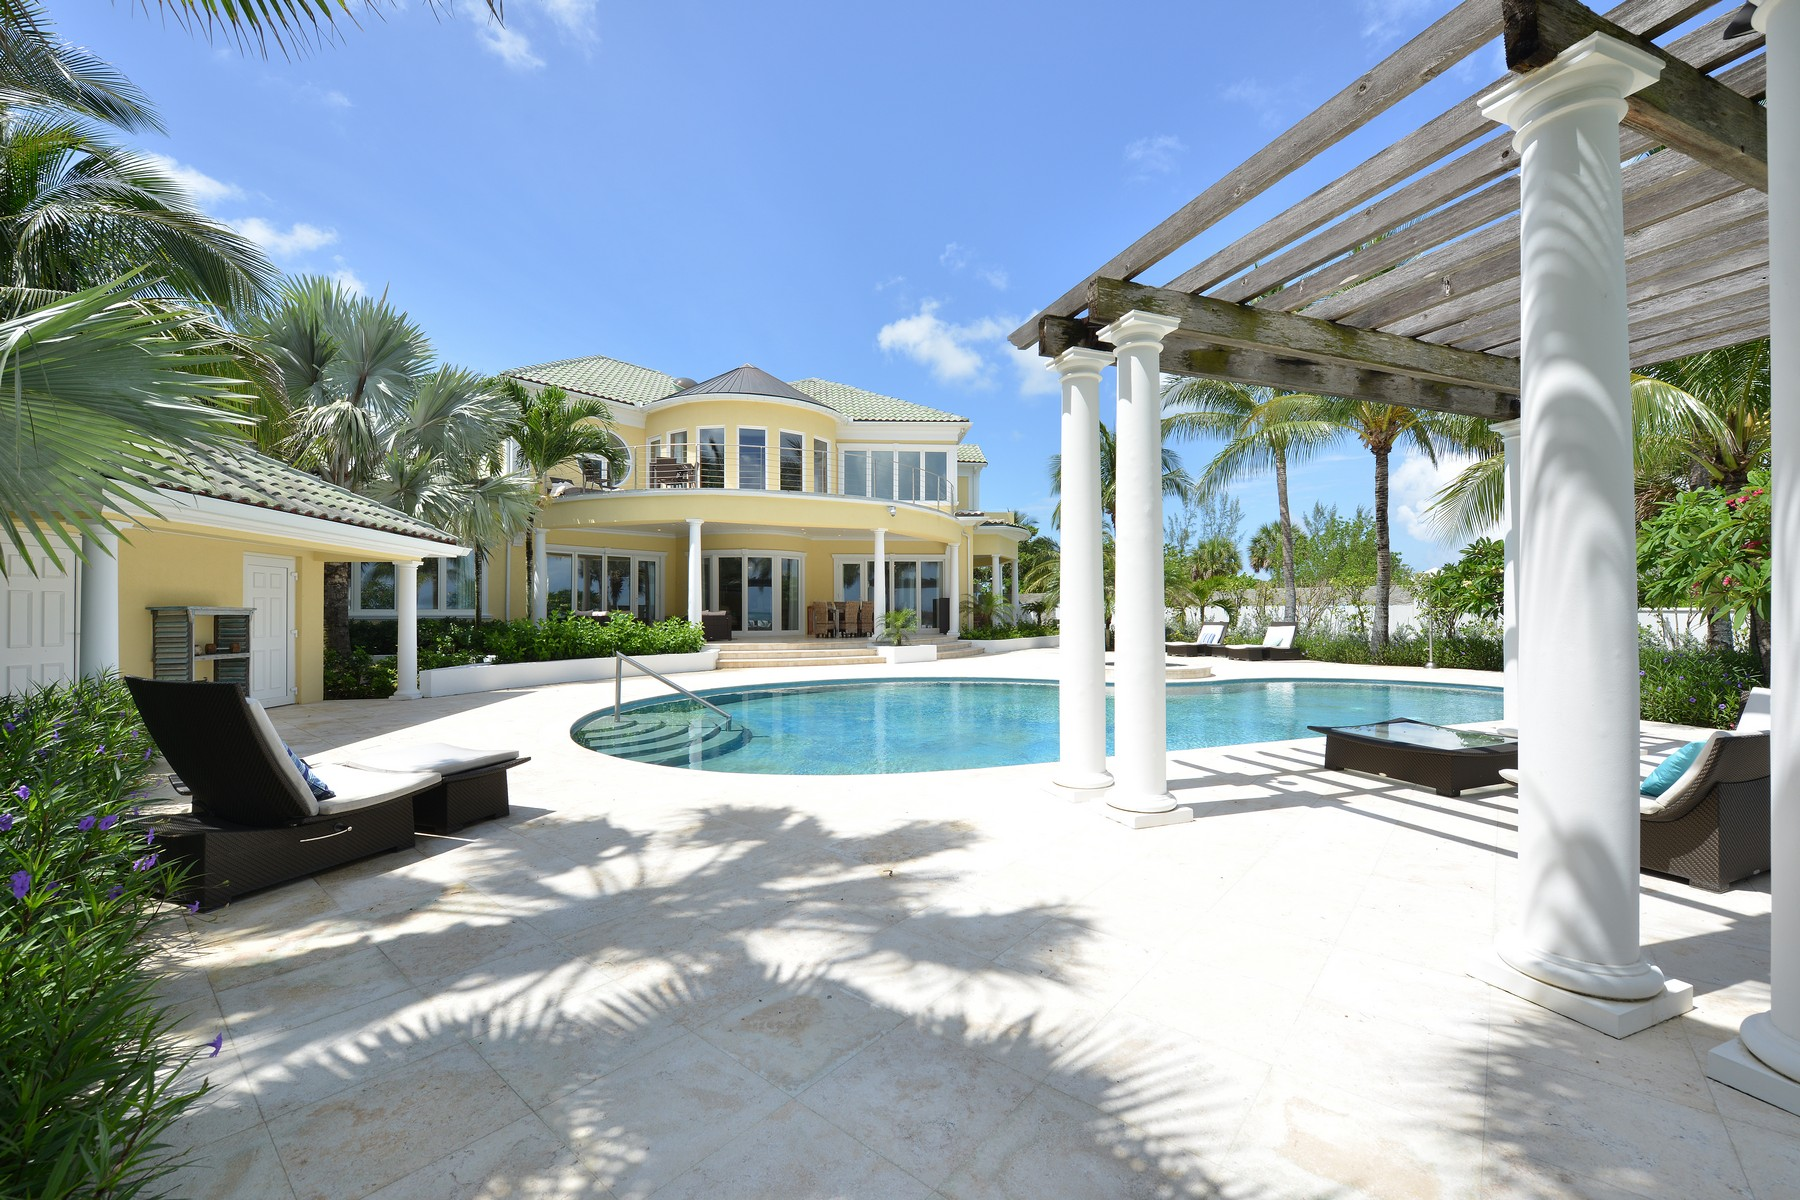 Single Family Home for Sale at Old Fort Bay House on Ocean Drive Old Fort Bay, Nassau And Paradise Island, Bahamas